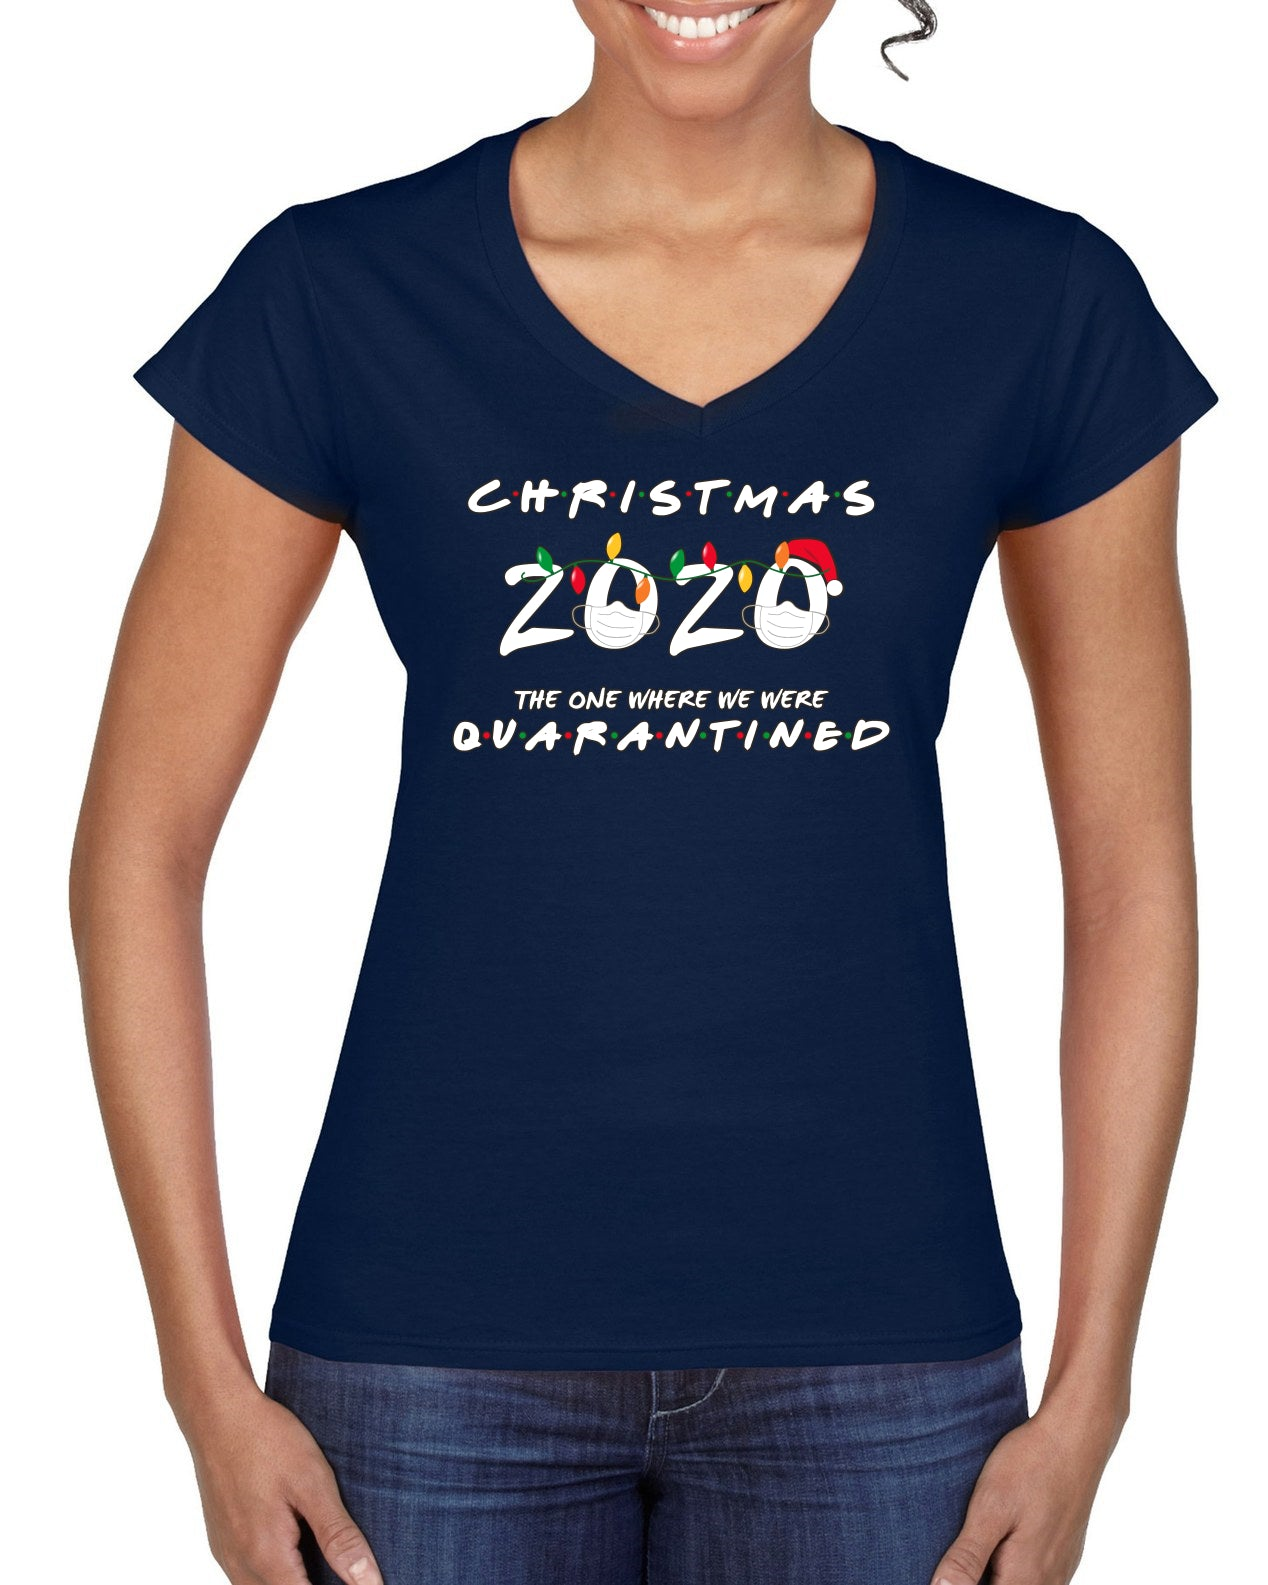 Christmas 2020 The One Where we were Quarantined Christmas Women's Standard V-Neck Tee